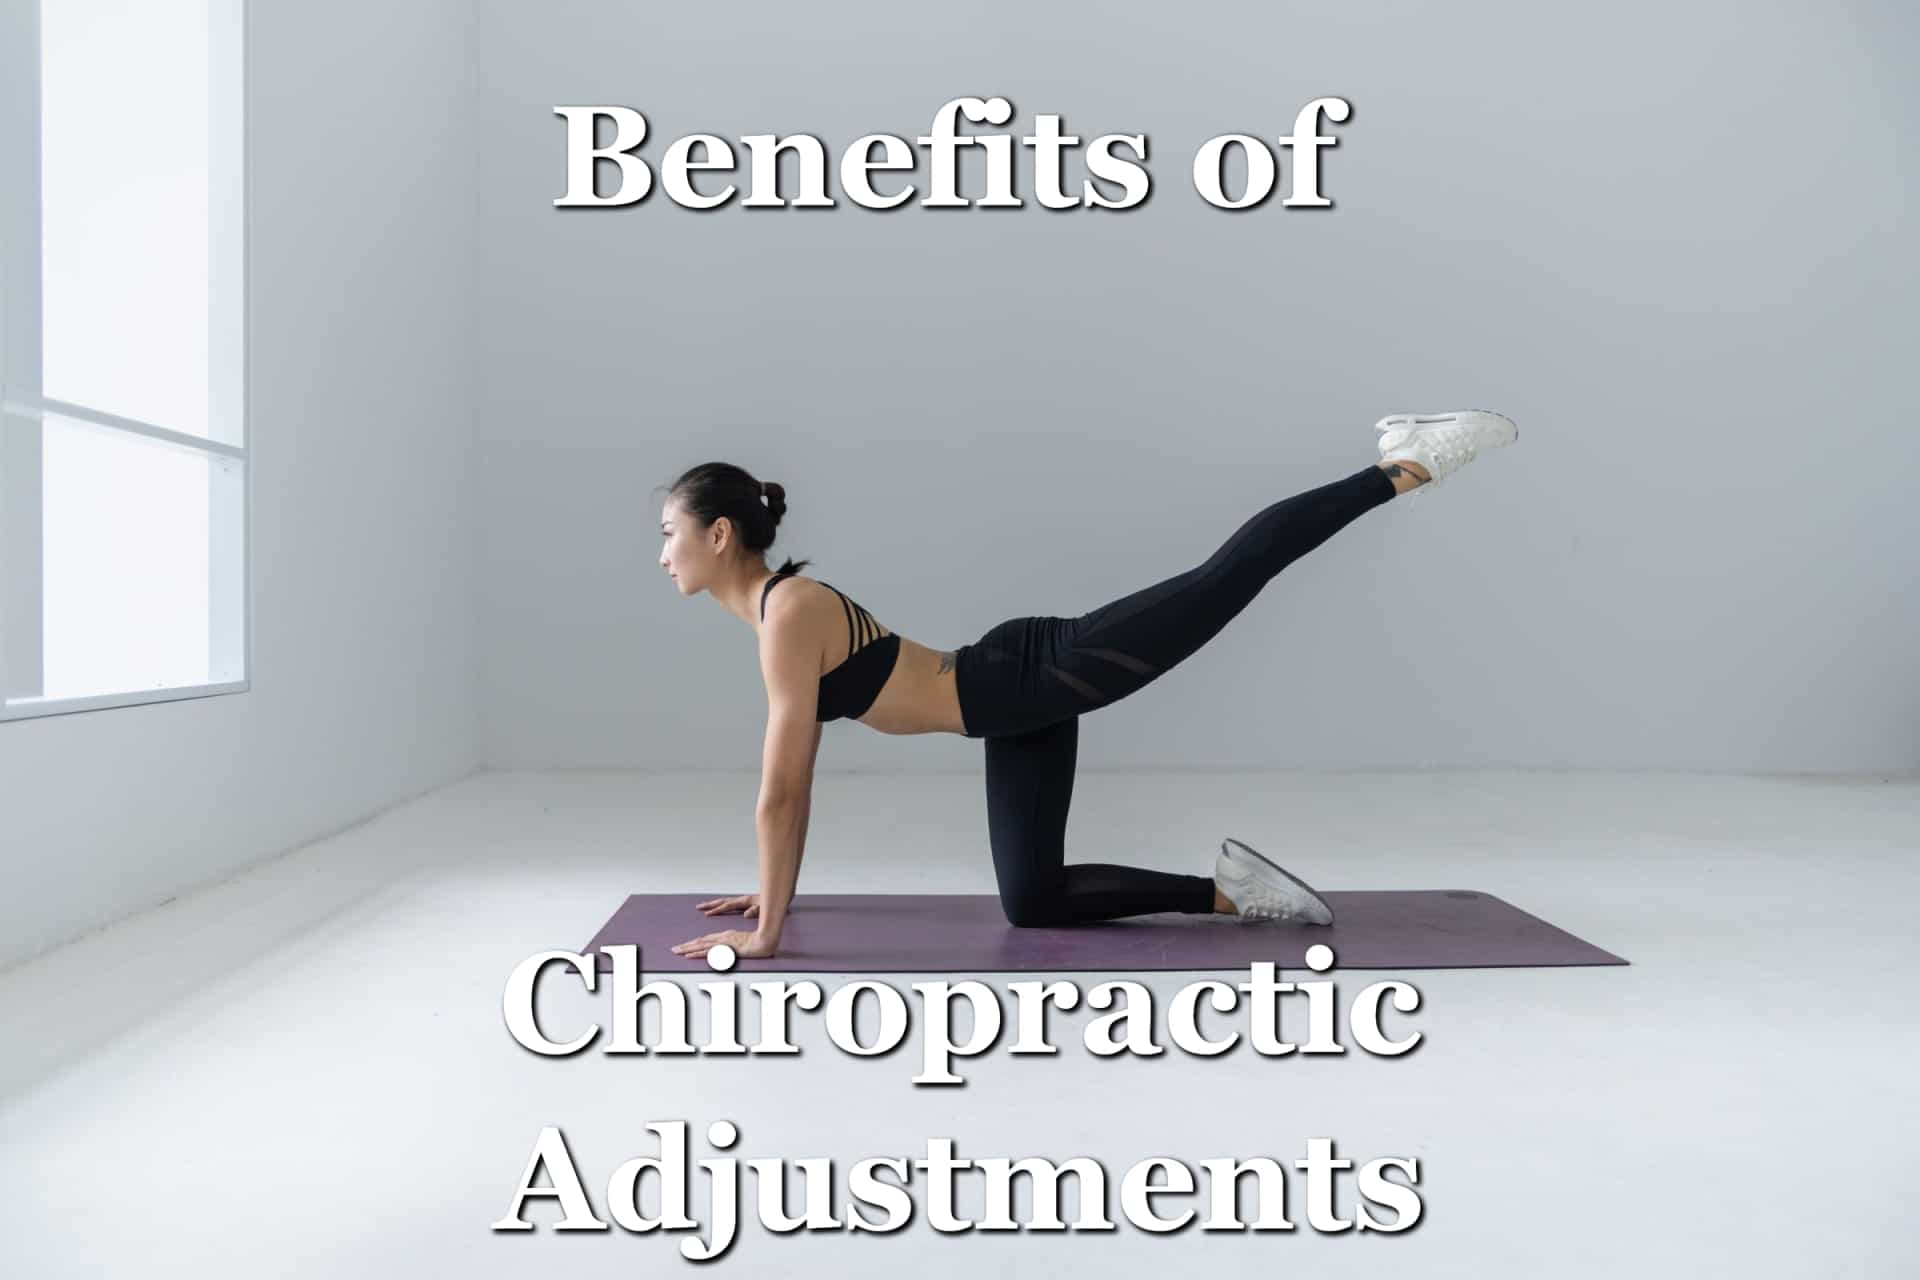 A woman doing yoga after enjoying the benefits of chiropractic adjustments including better mobility